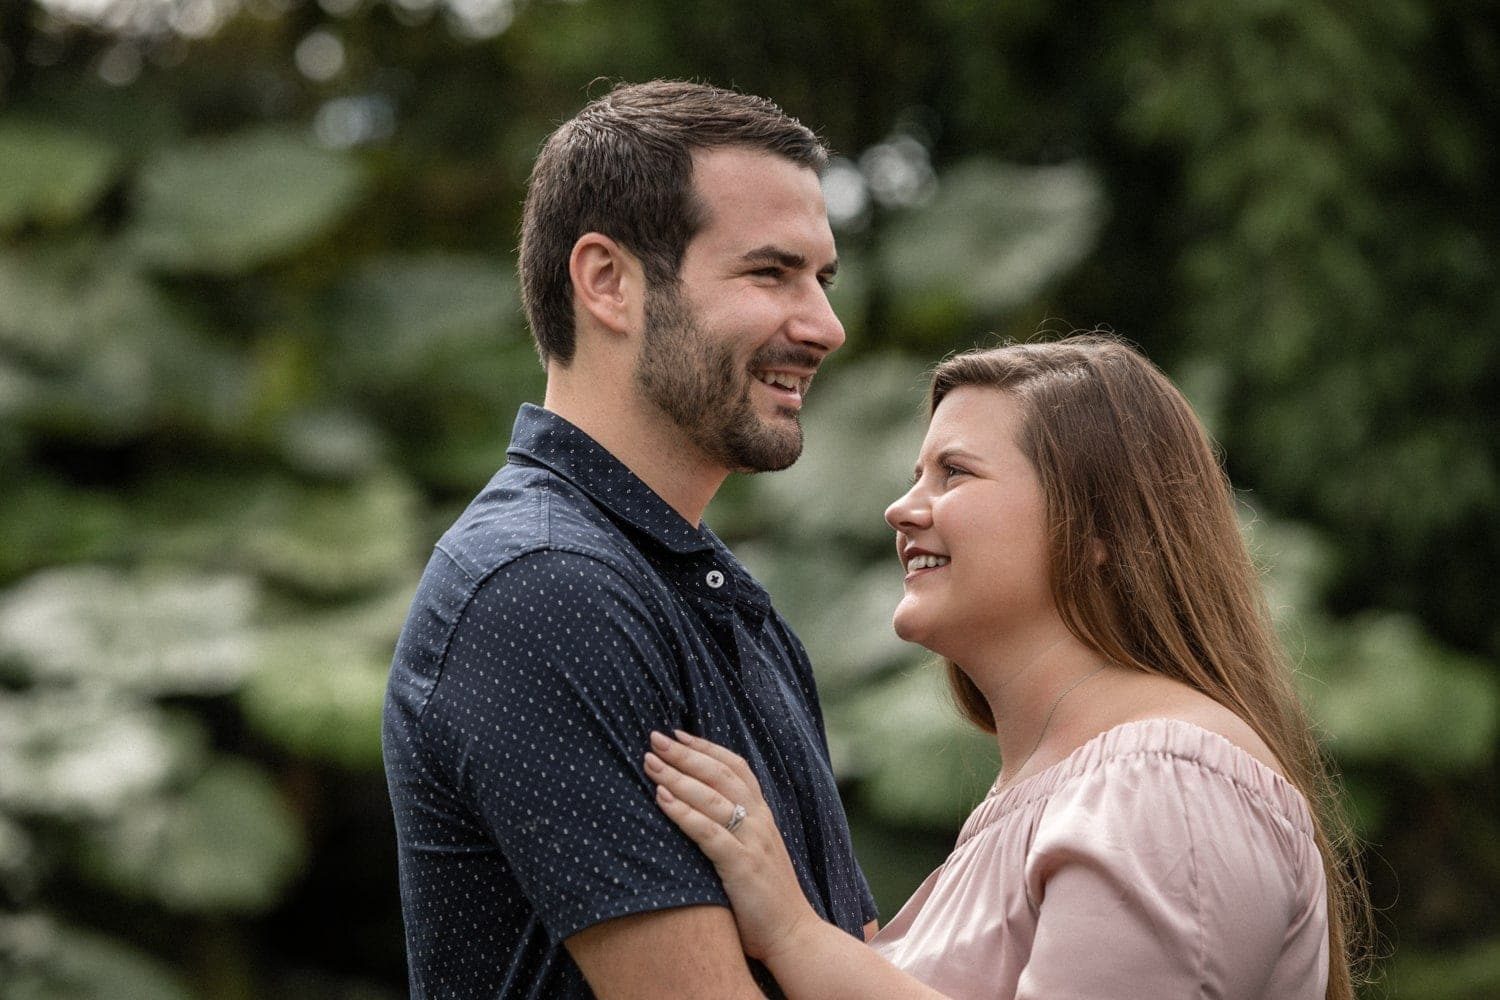 Photo of couple in love at La Paz Waterfall Gardens, Costa Rica.